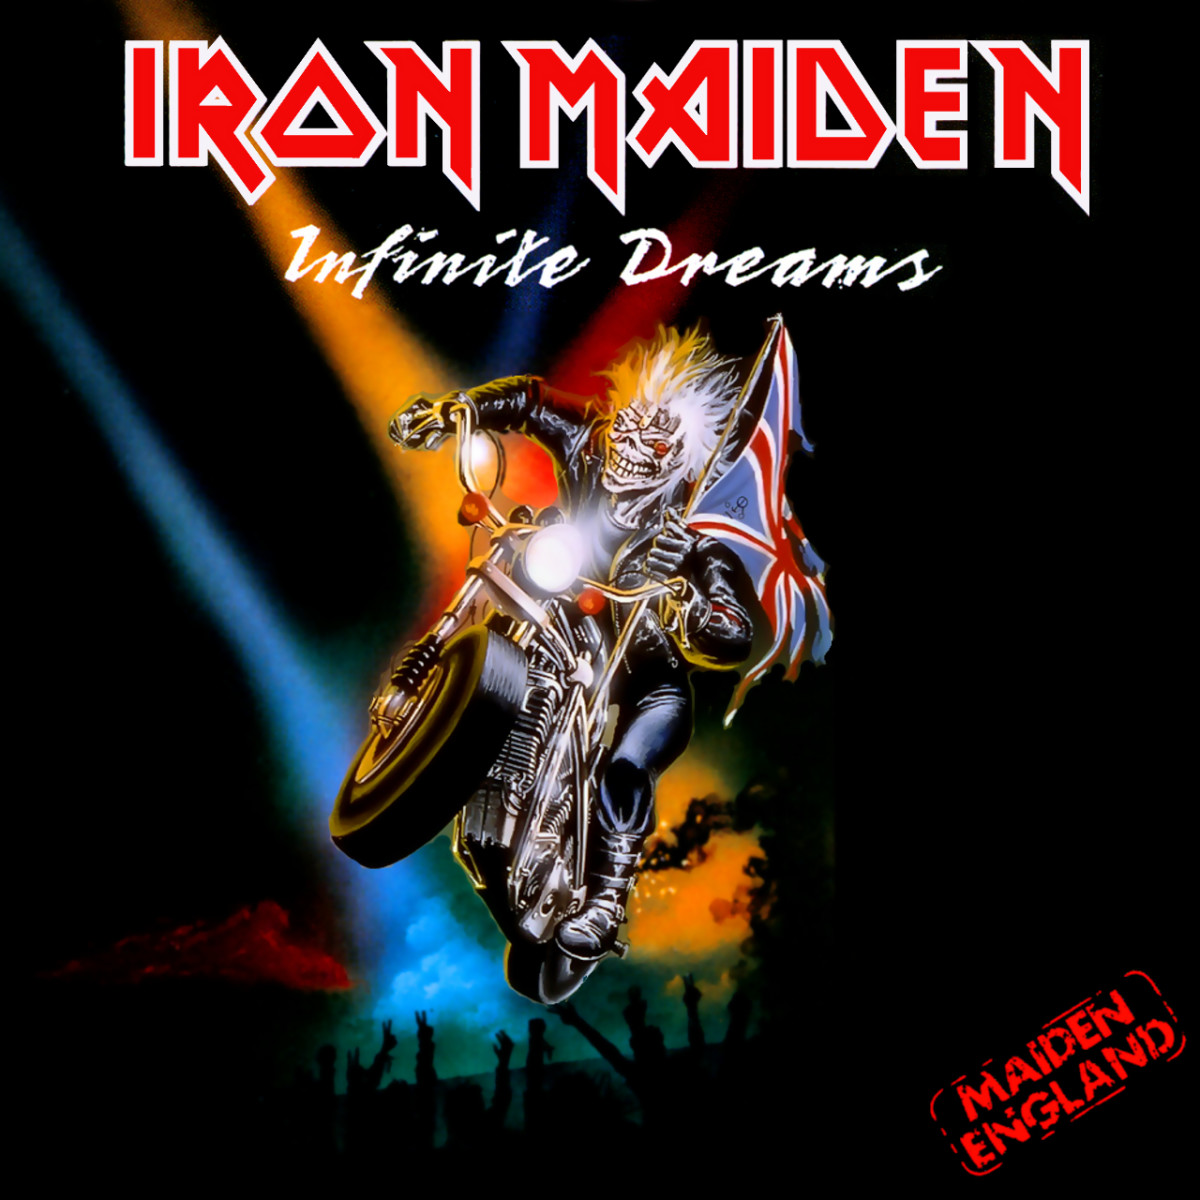 "Iron Maiden ""Infinite Dreams"" EMI 12 EM 117 12"" Maxi Single UK Pressing (1989) Cover Art by Derek Riggs"